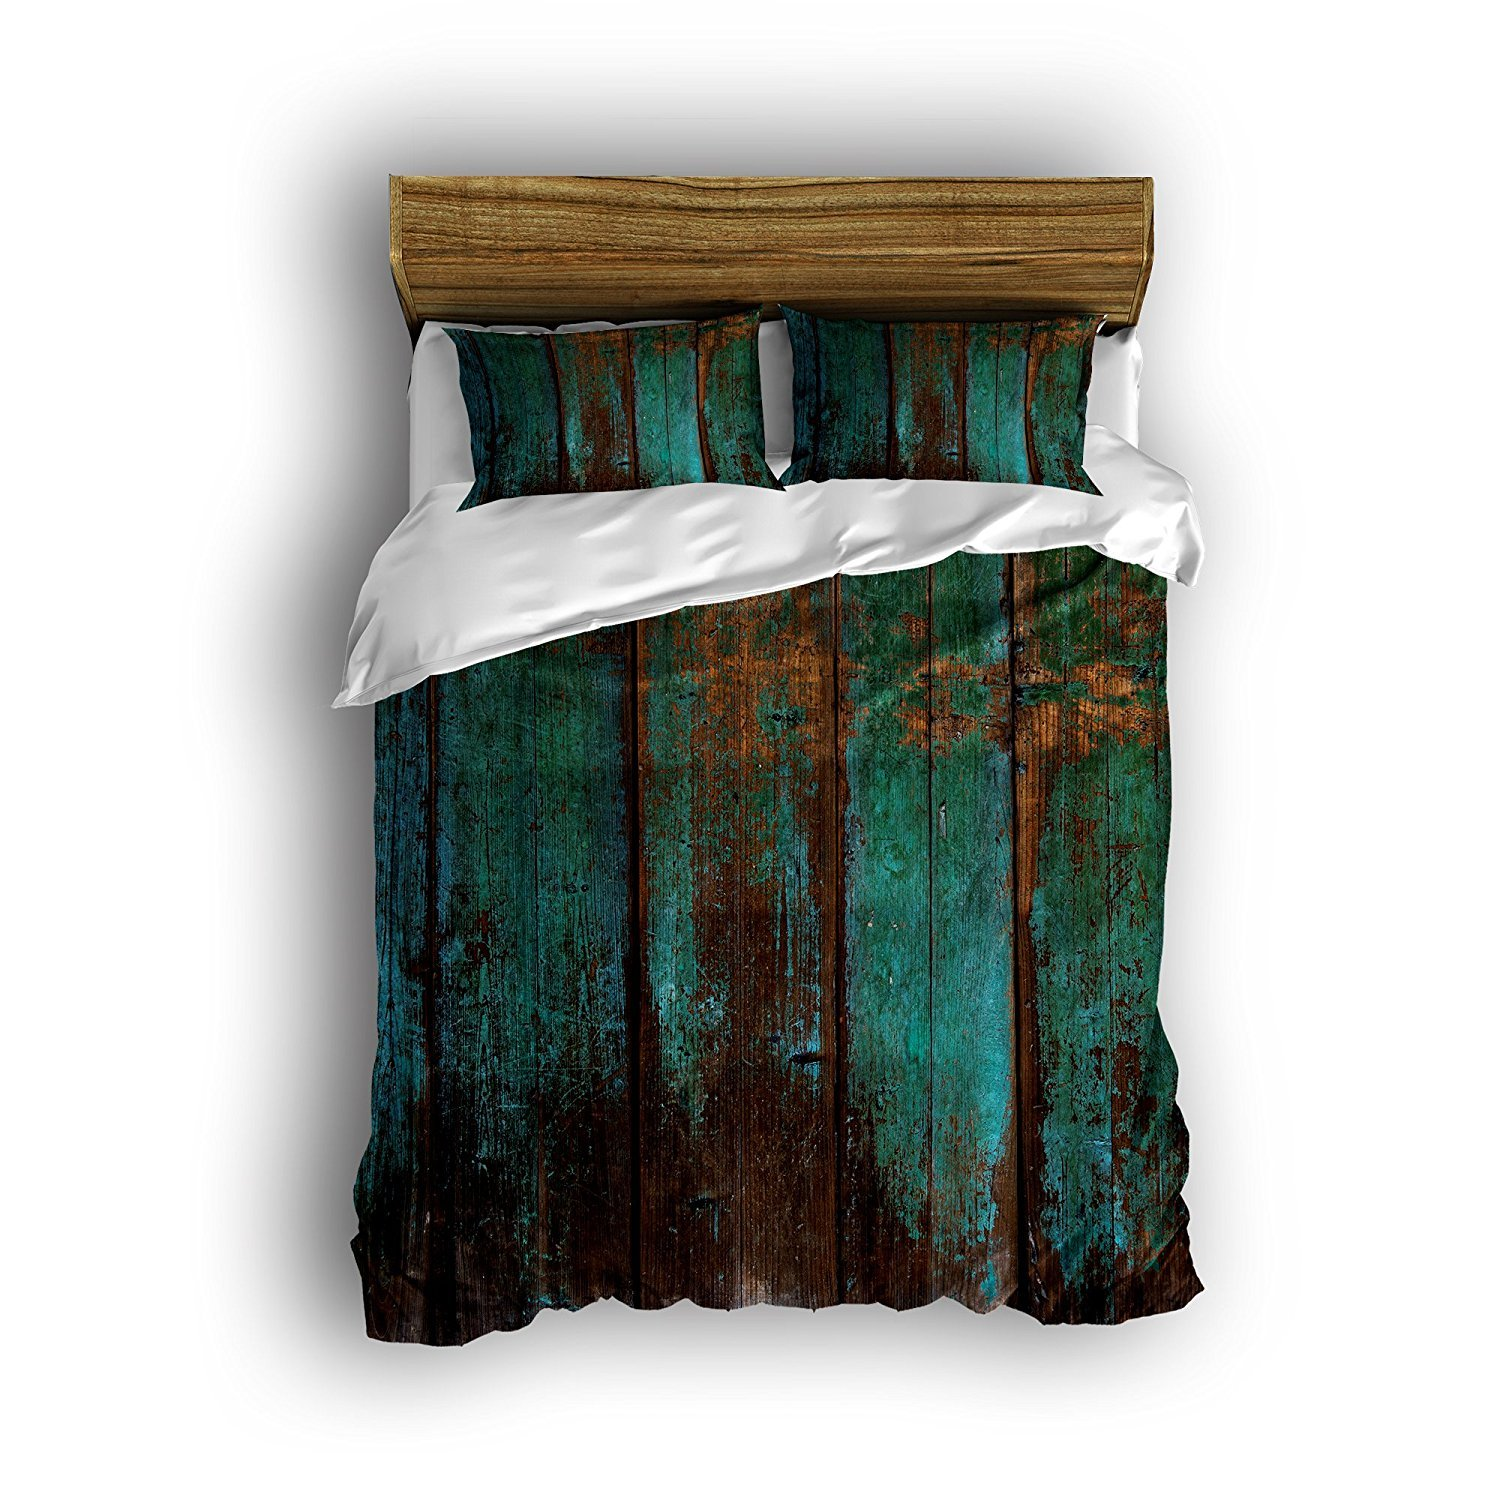 Libaoge 4 Piece Bed Sheets Set, Country Rustic Distressed Teal Green Barn Wood Print, 1 Flat Sheet 1 Duvet Cover and 2 Pillow Cases